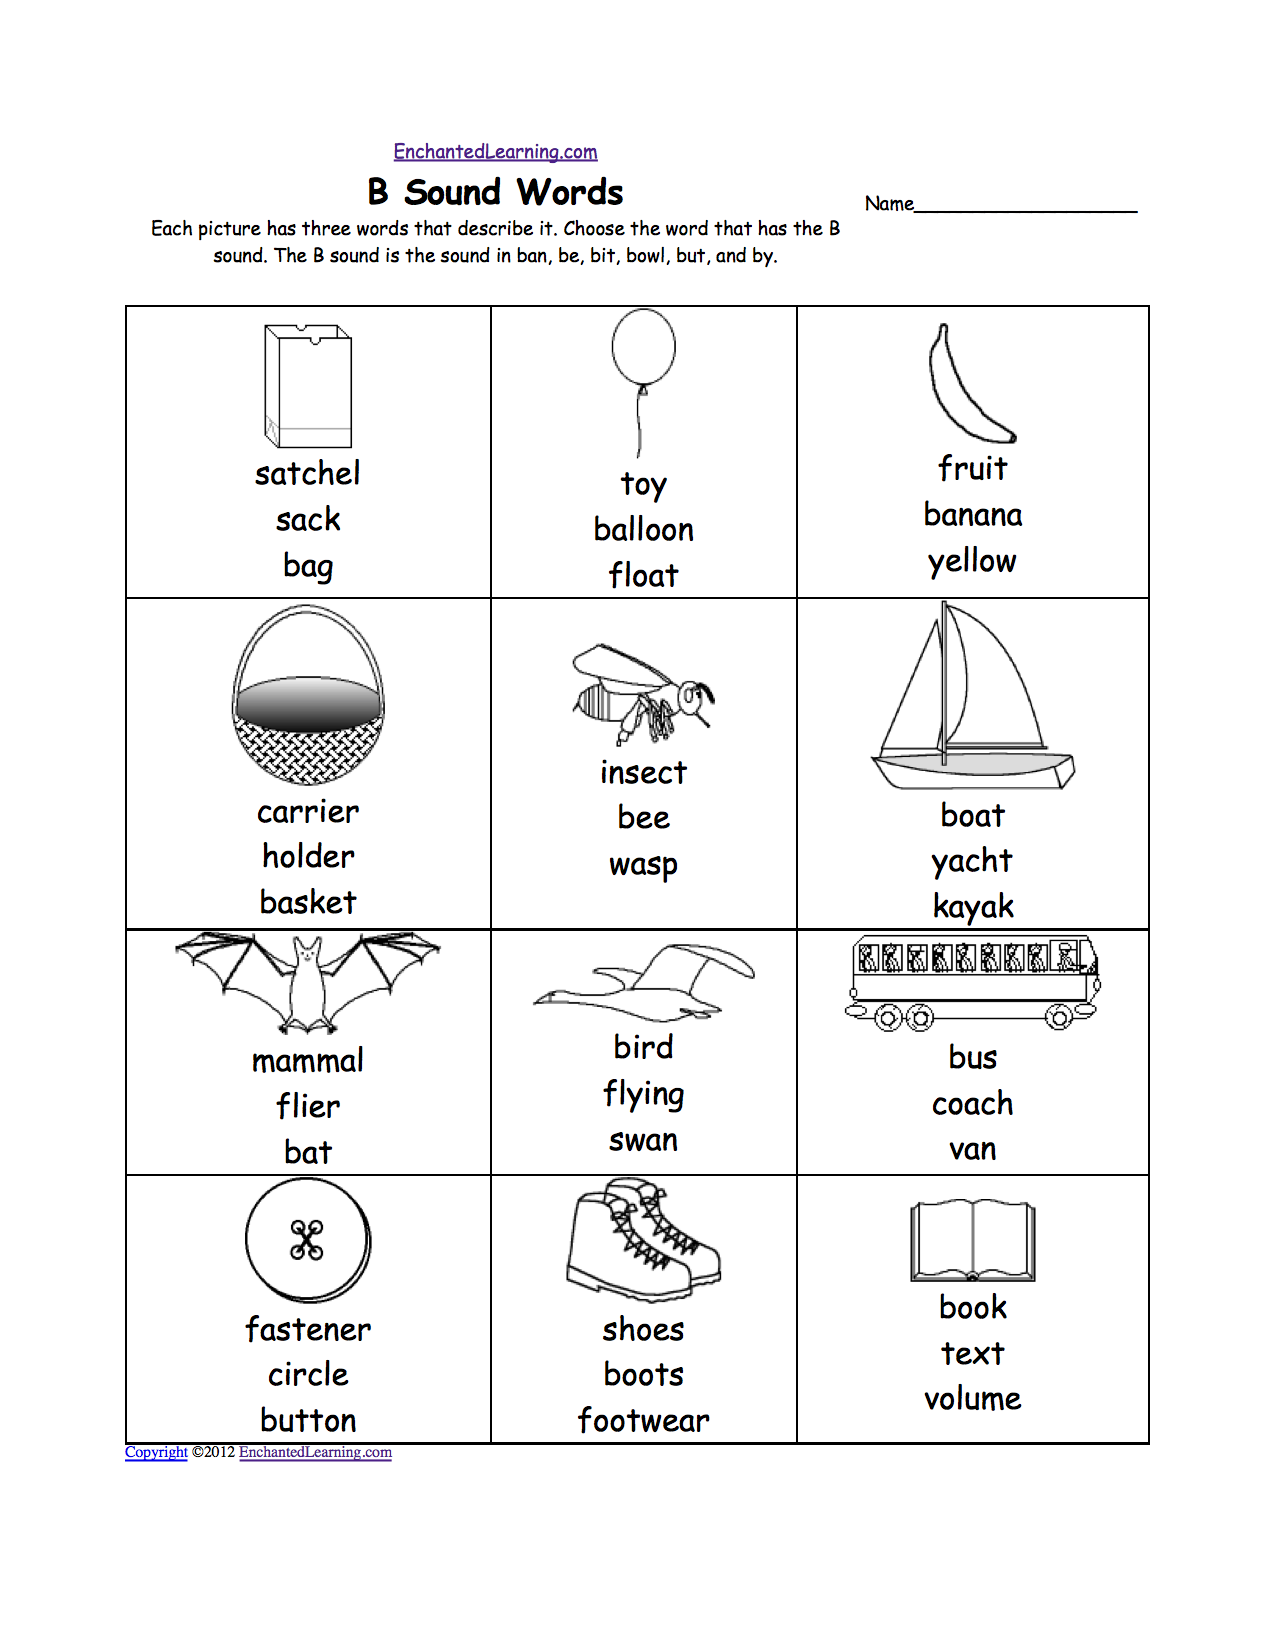 Weirdmailus  Scenic Phonics Worksheets Multiple Choice Worksheets To Print  With Foxy Quotbquot Sound Phonics Worksheet Multiple Choice Each Picture Has Three Words That Describe It Choose The Word That Has A Quotbquot Sound The Quotbquot Sound Is The Sound  With Delightful Writing Nuclear Equations Chem Worksheet   Answers Also Properties Of Water Worksheet In Addition Identifying Tone And Mood Worksheet And Making Inferences Worksheet As Well As Budget Worksheet Printable Additionally Printable Kindergarten Worksheets From Enchantedlearningcom With Weirdmailus  Foxy Phonics Worksheets Multiple Choice Worksheets To Print  With Delightful Quotbquot Sound Phonics Worksheet Multiple Choice Each Picture Has Three Words That Describe It Choose The Word That Has A Quotbquot Sound The Quotbquot Sound Is The Sound  And Scenic Writing Nuclear Equations Chem Worksheet   Answers Also Properties Of Water Worksheet In Addition Identifying Tone And Mood Worksheet From Enchantedlearningcom